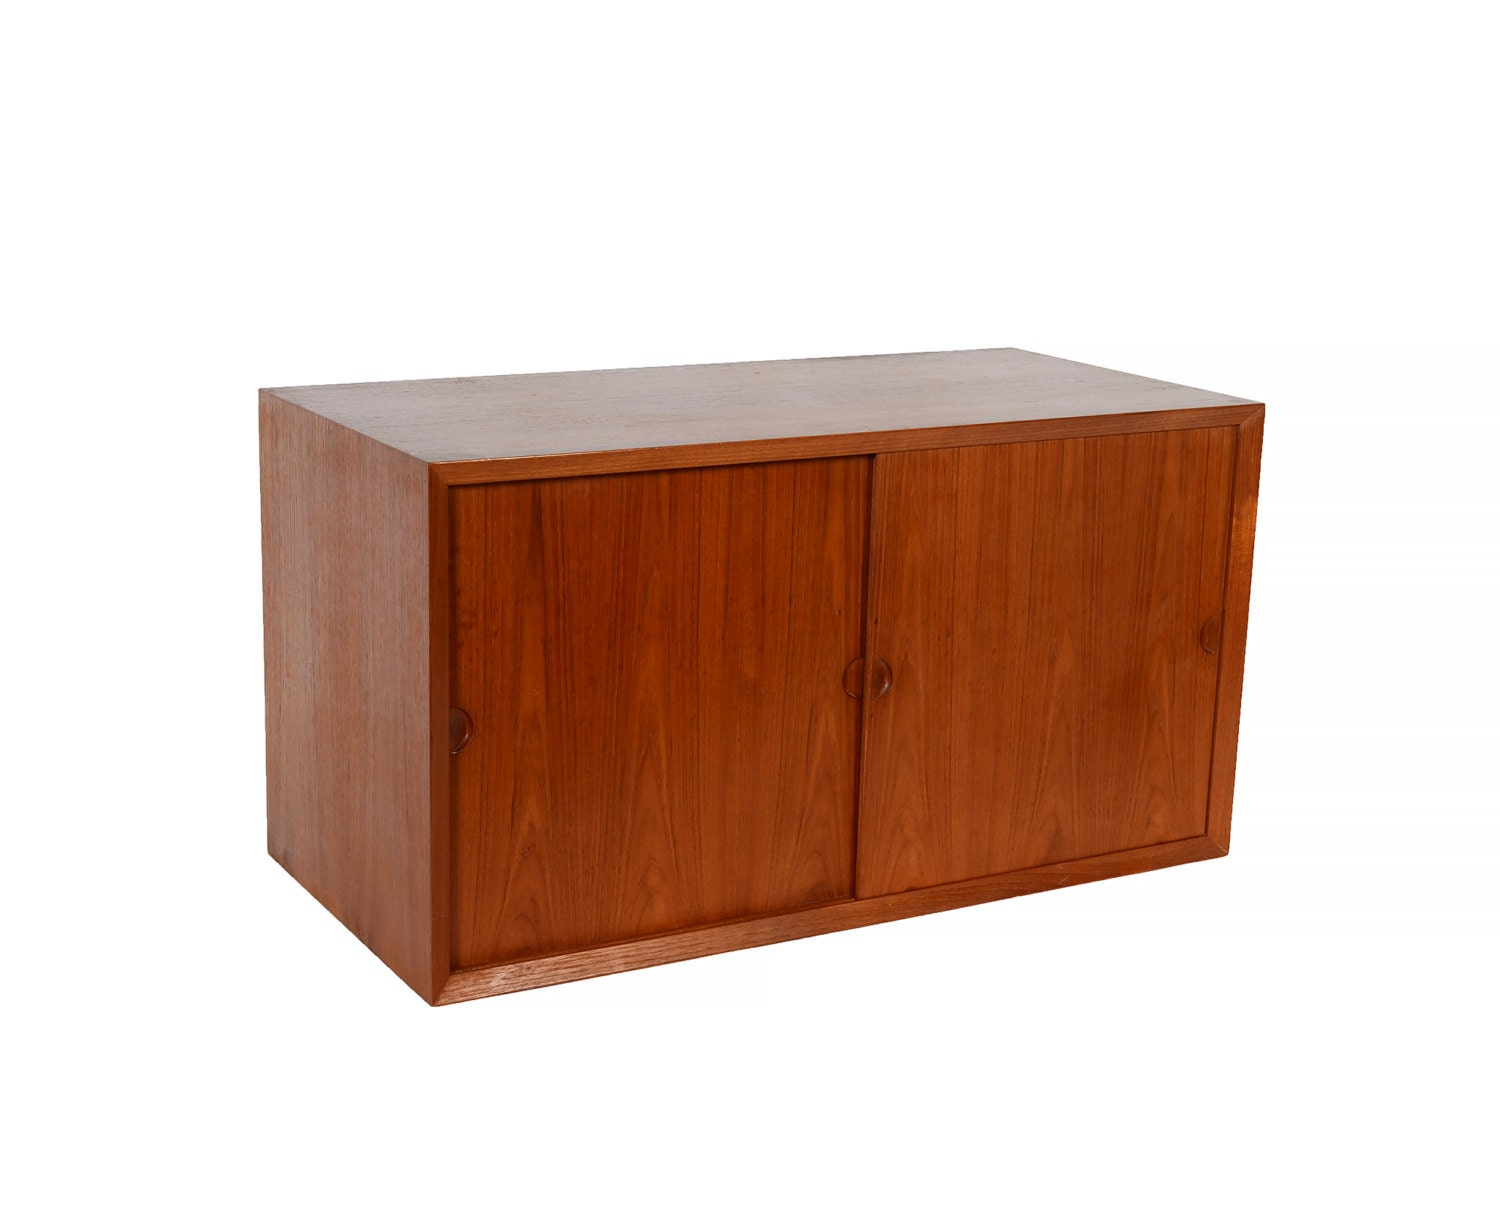 Cado unit teak cabinet danish modern by hearthsidehome on etsy for Modern teak kitchen cabinets